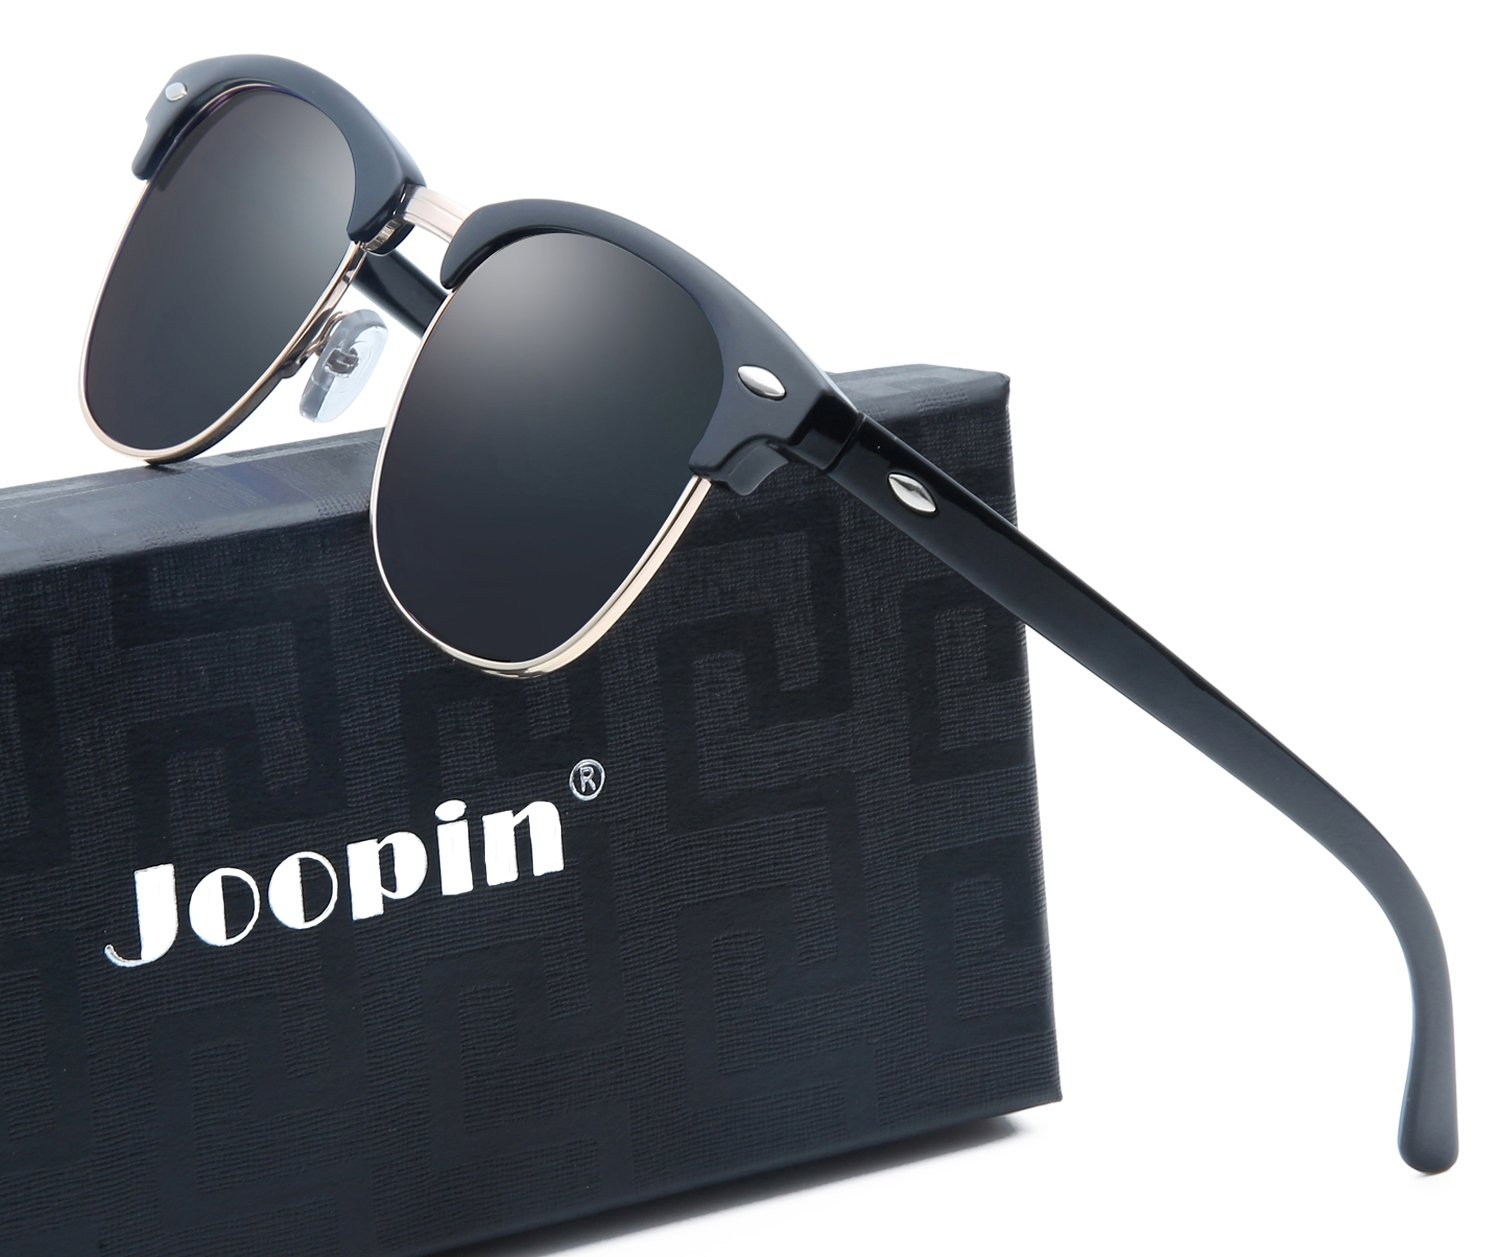 Joopin Semi Rimless Polarized Sunglasses Women Men Brand Vintage Glasses Plaroid Lens Sun Glasses (Brilliant Black Frame Grey Lens) by Joopin